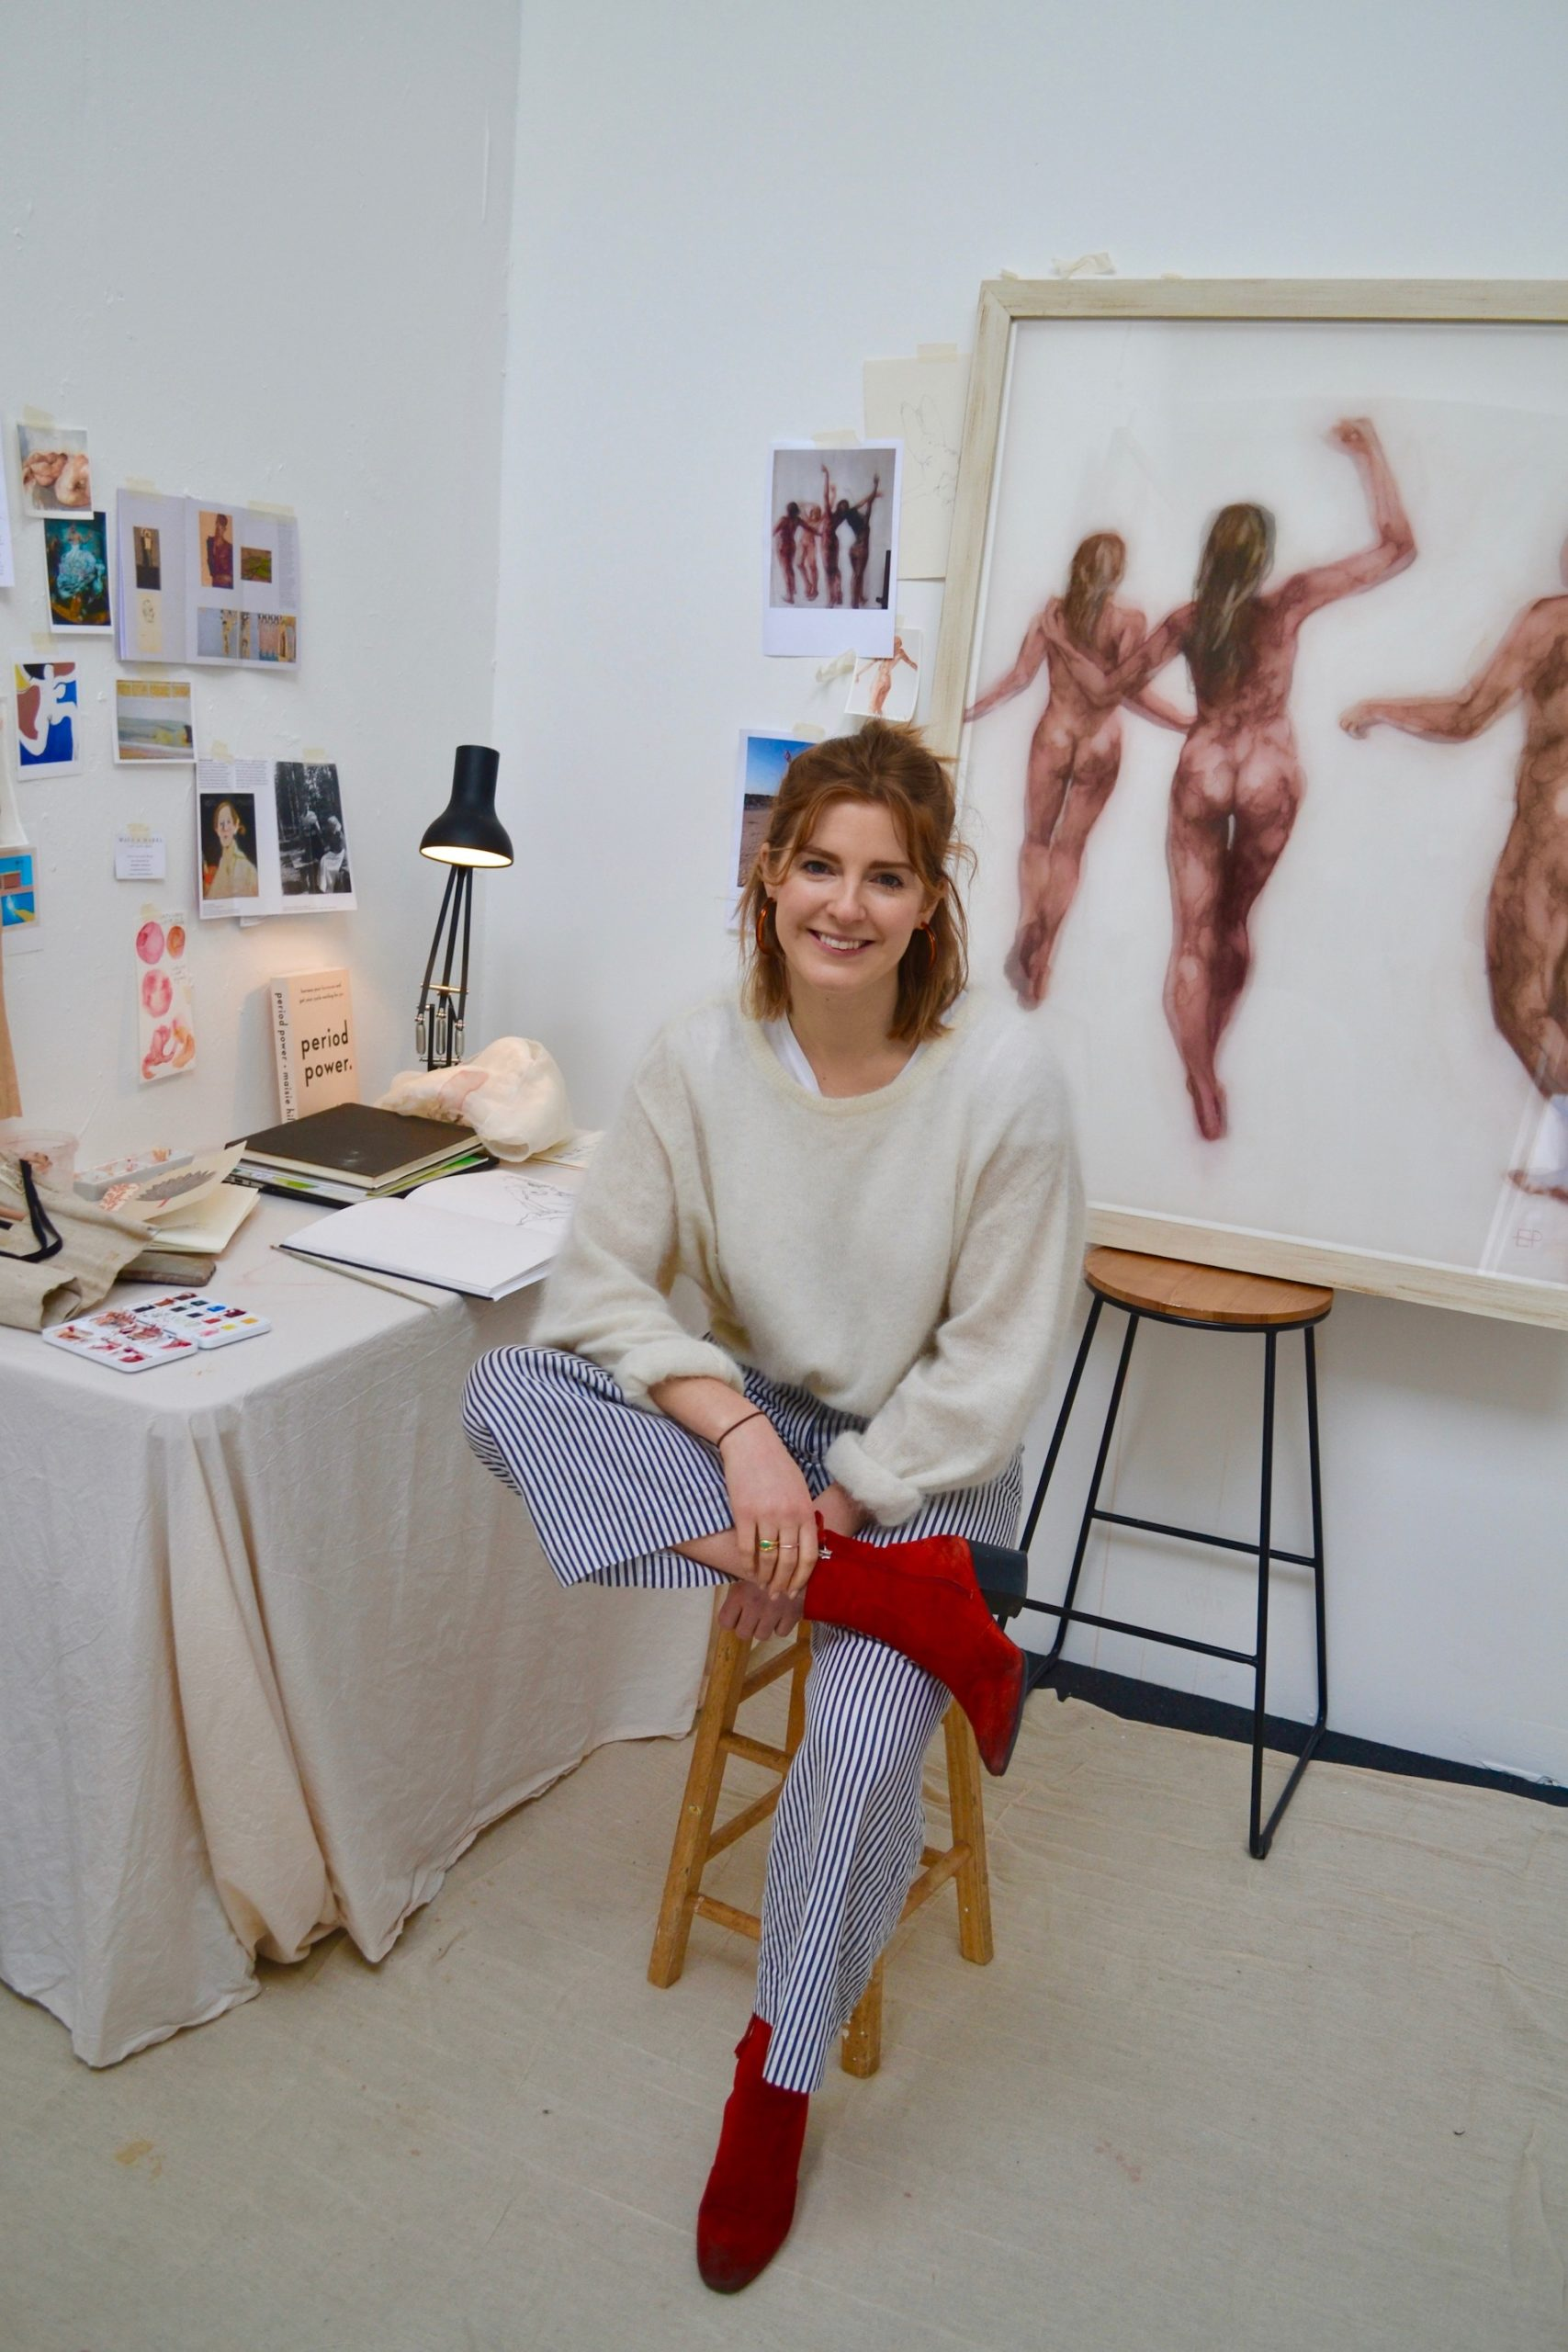 emily ponsonby pull blanc chaussures rouges femmes nues studio artiste